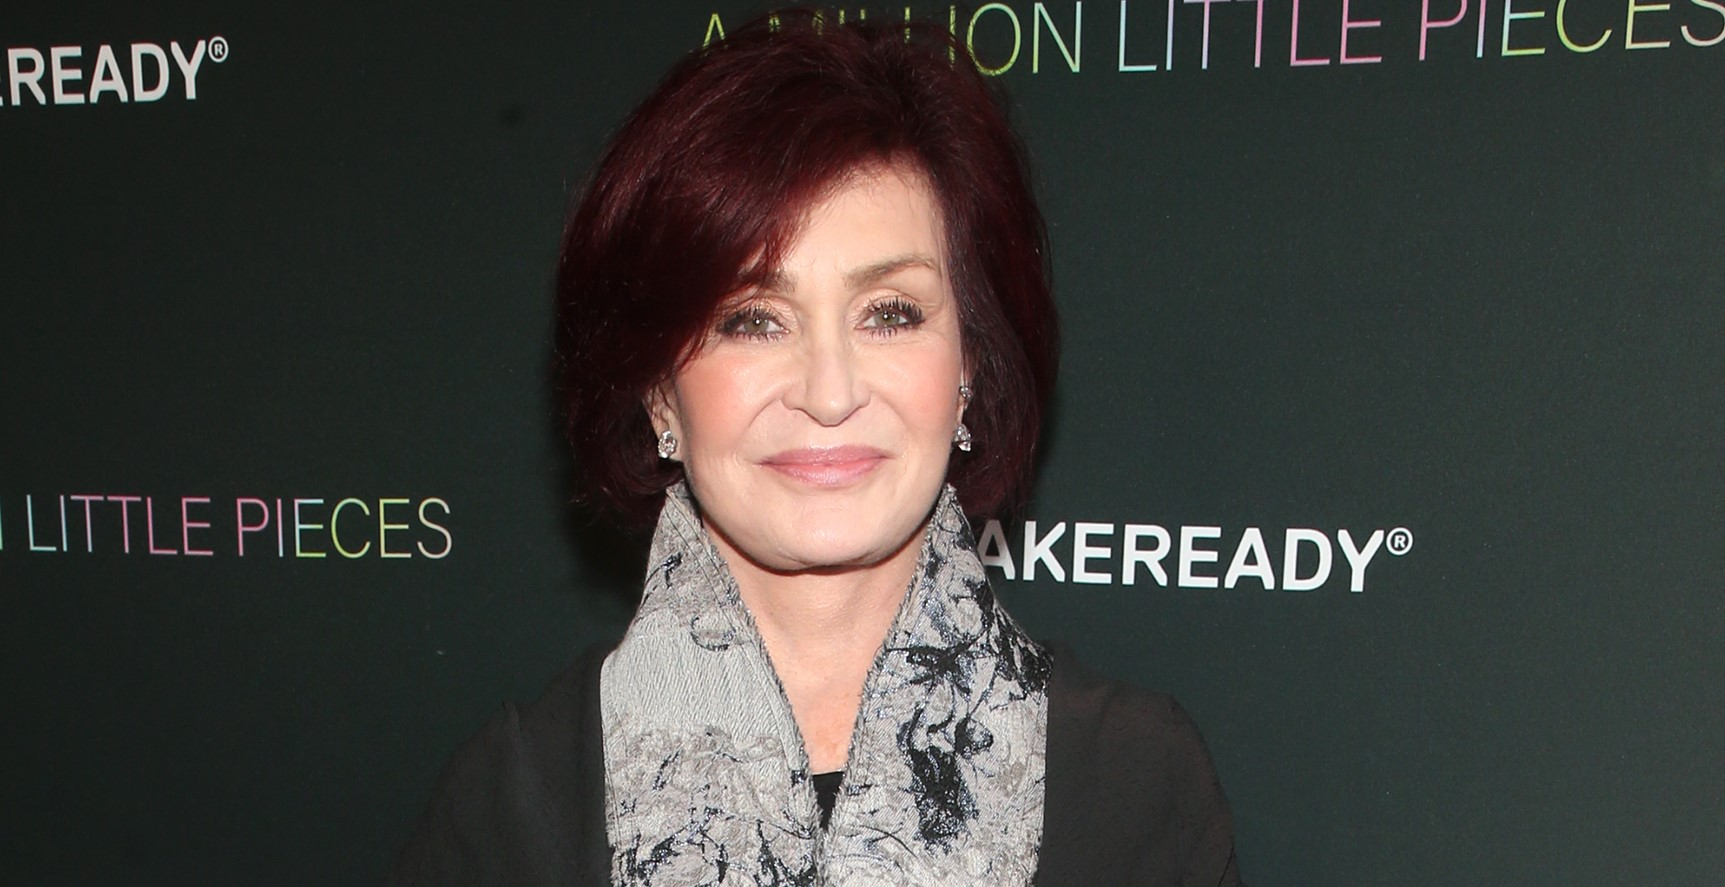 Sharon Osbourne Trades Signature Red Hair for White Hair After 18 Years